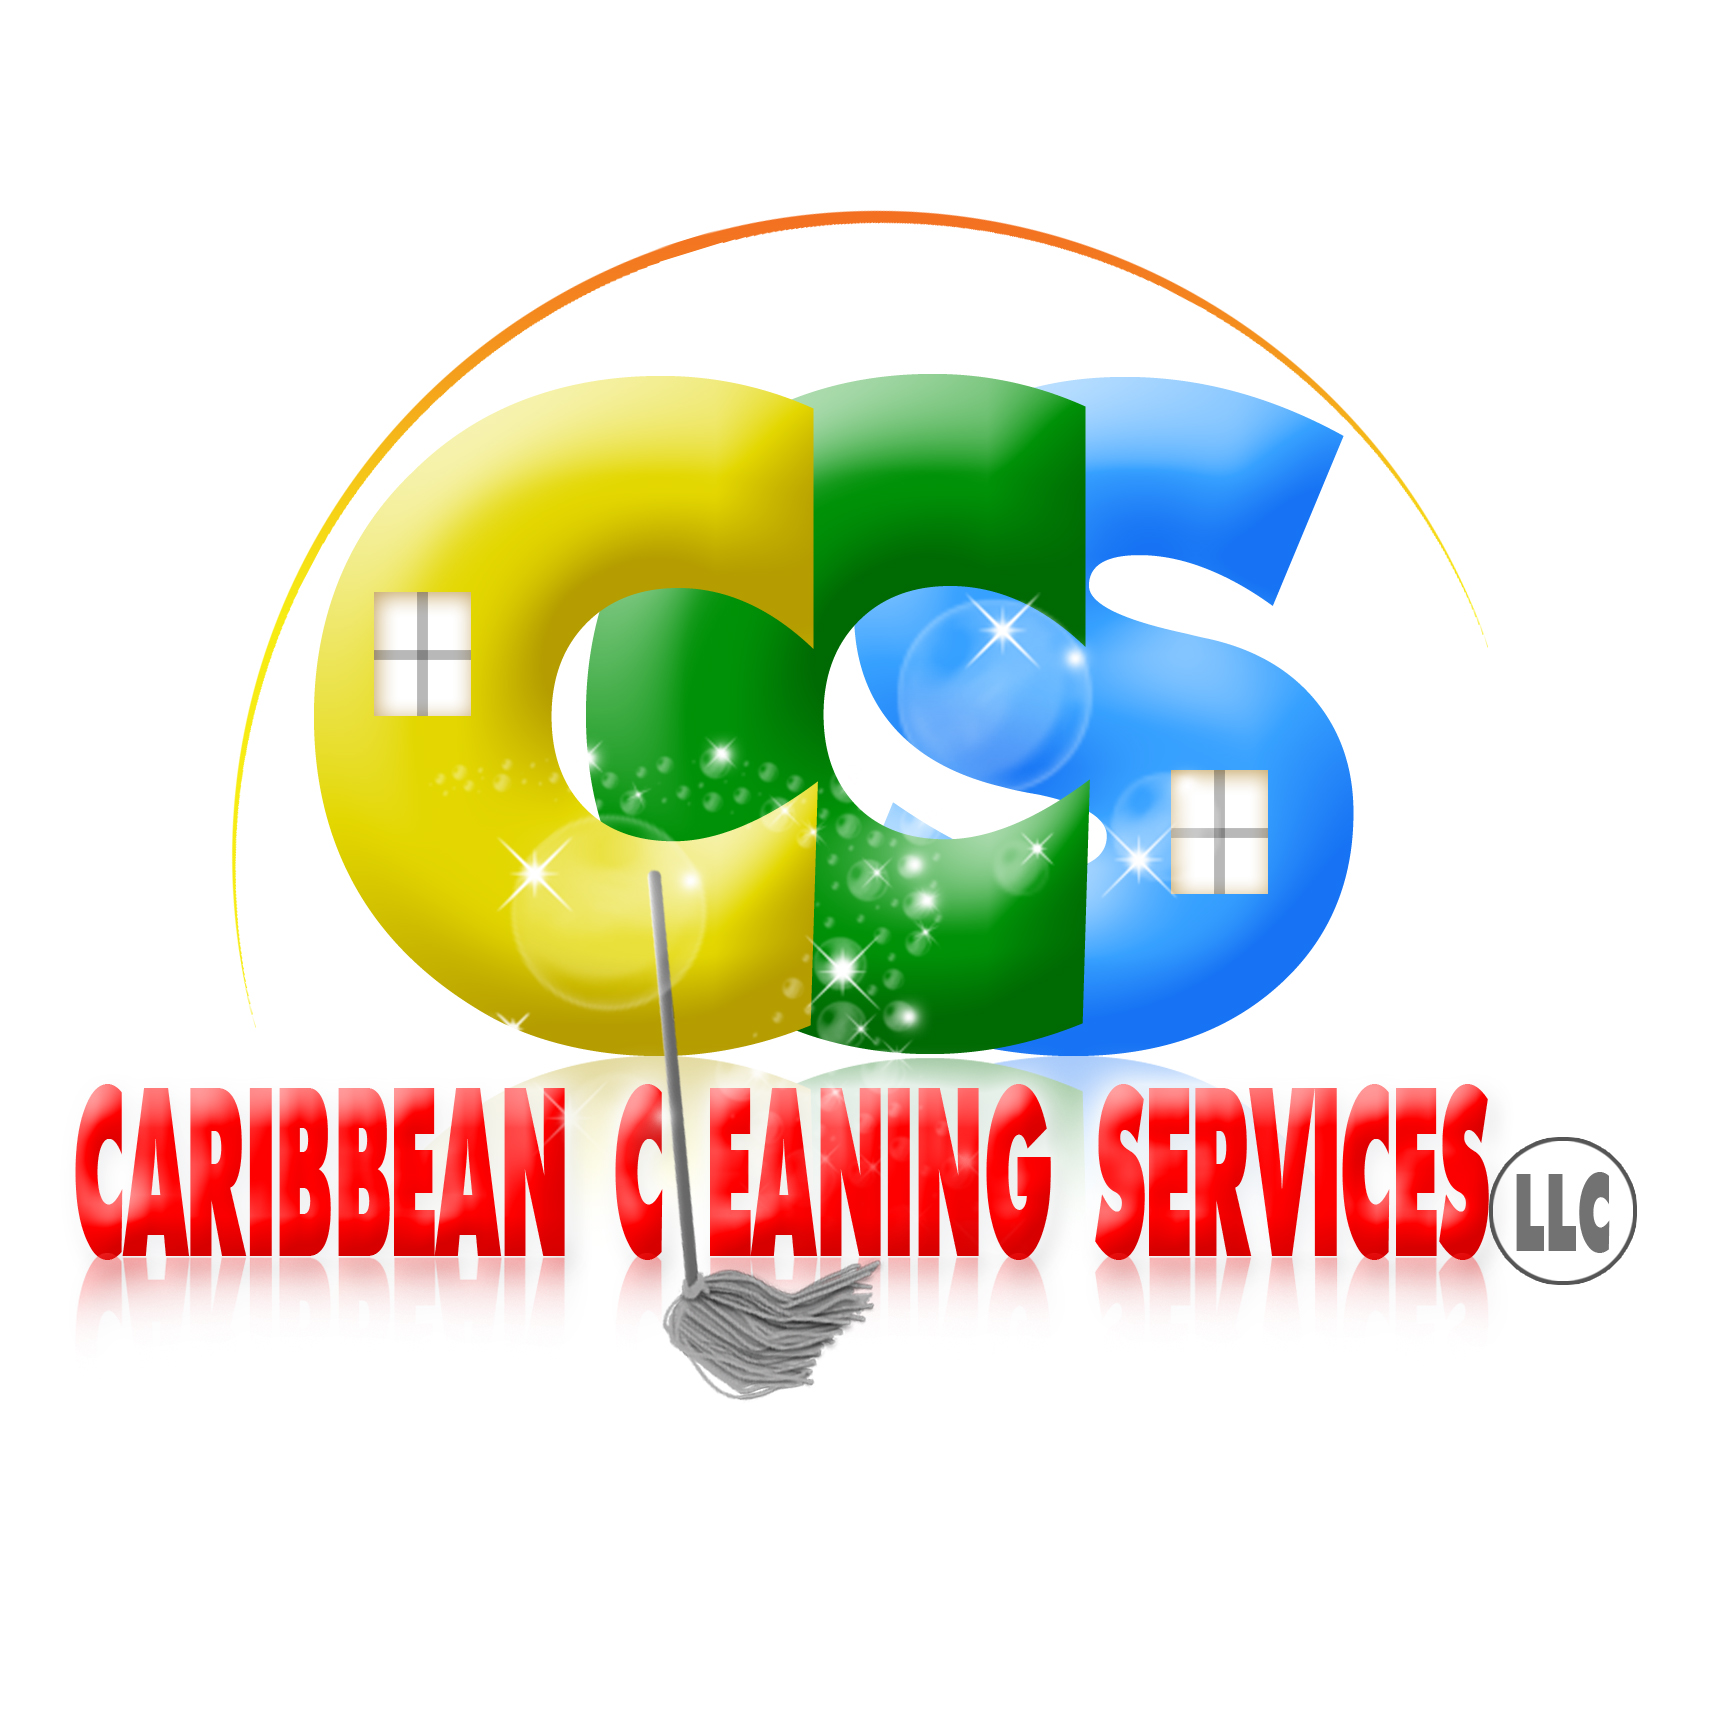 Caribbean Cleaning Services LLC